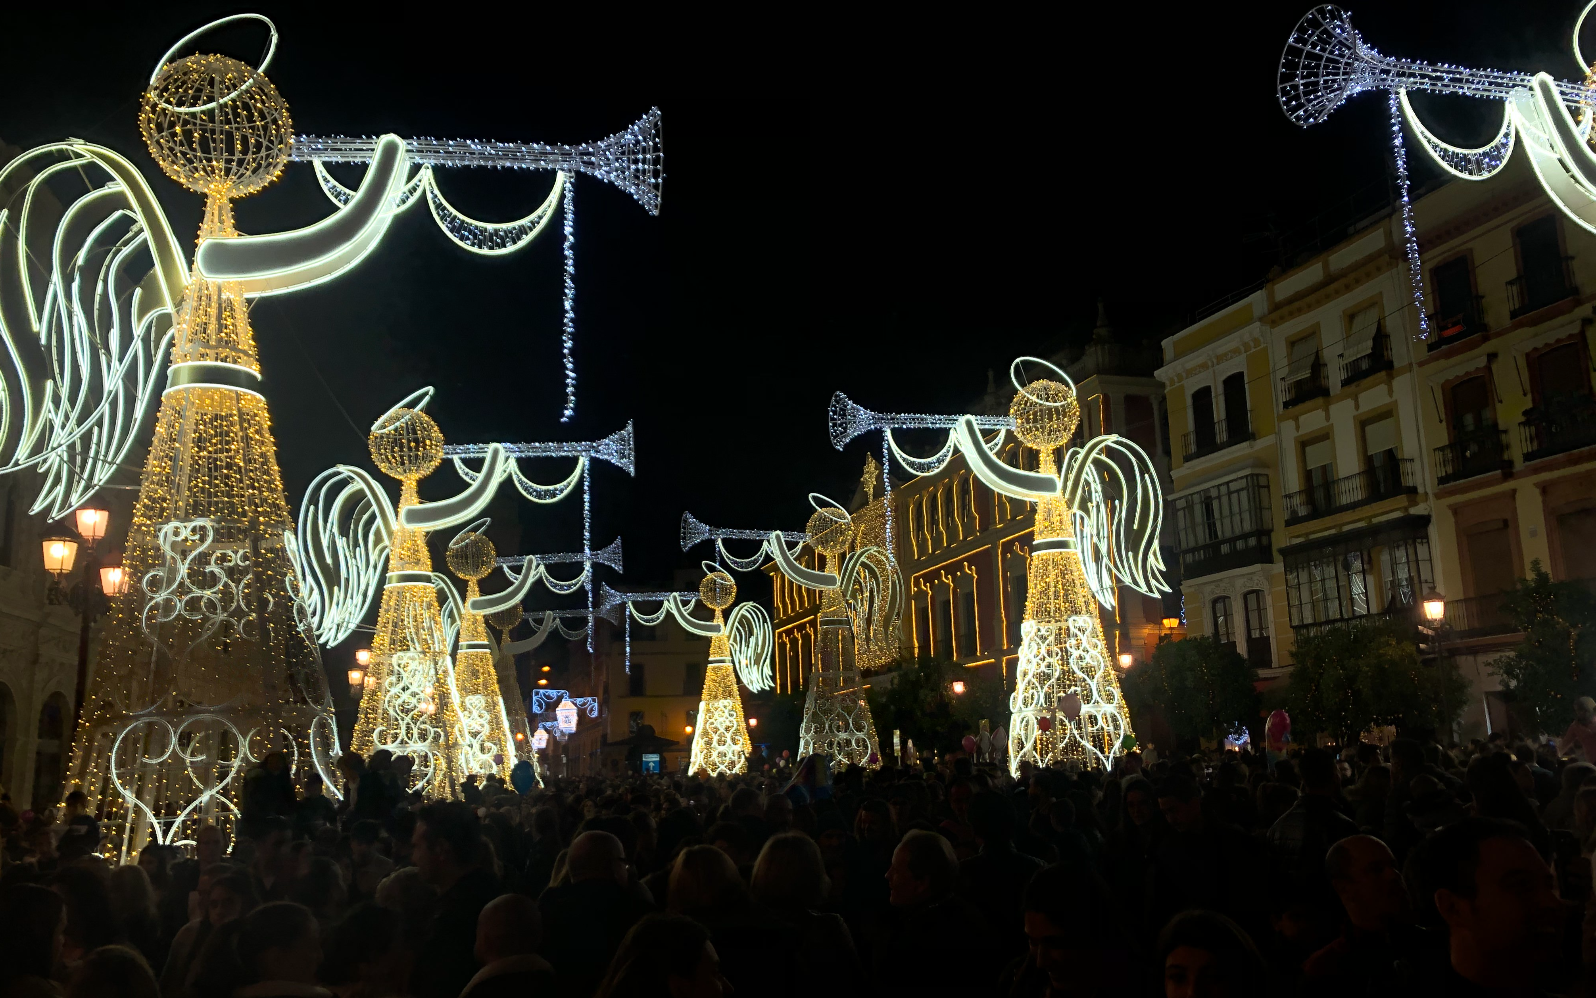 winter holiday decorations in Seville